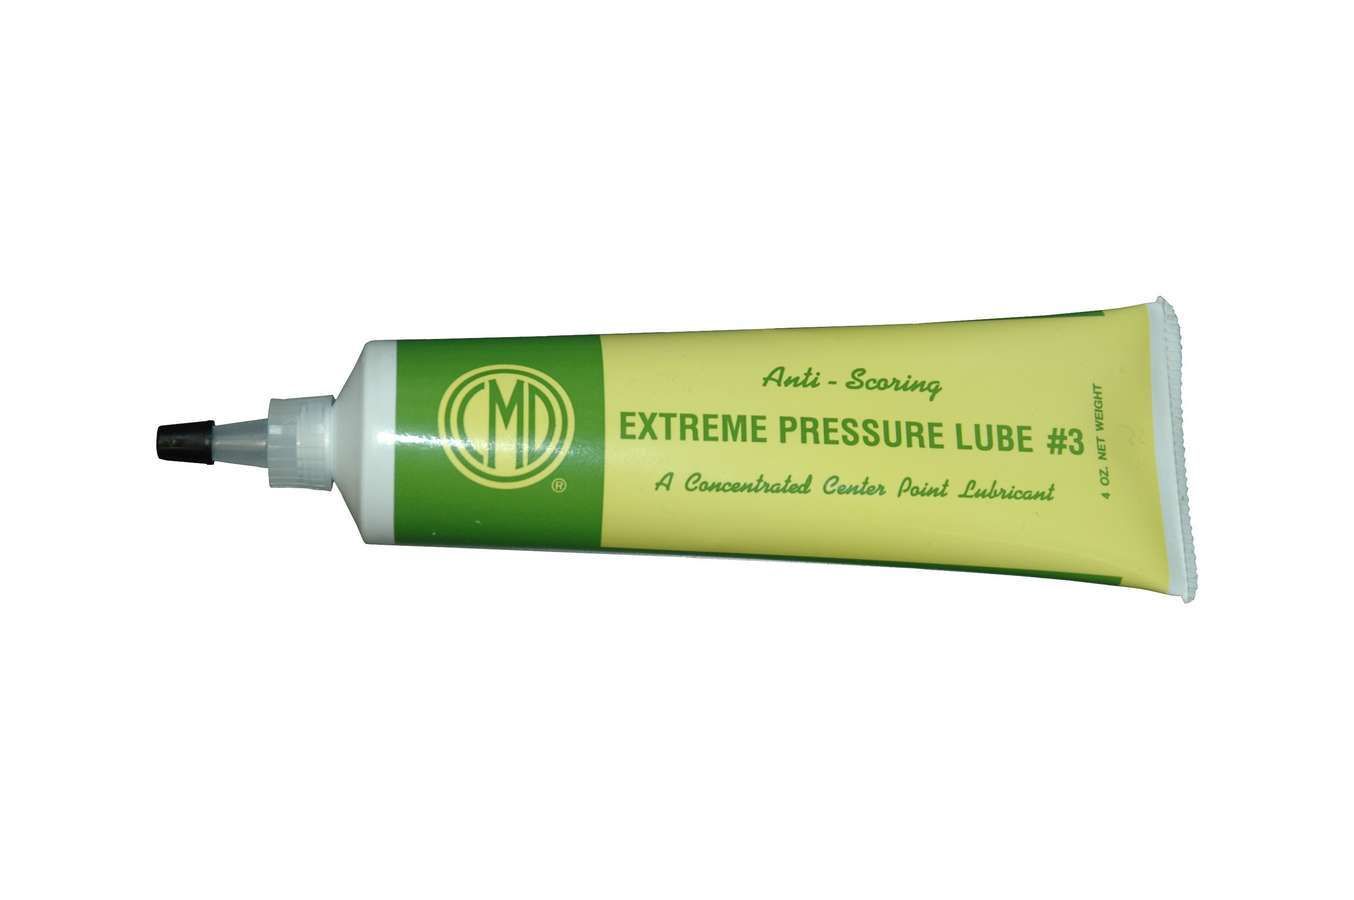 Dart LUBE Grease, Extreme Pressure Lube, Conventional, 4 oz Tube, Each